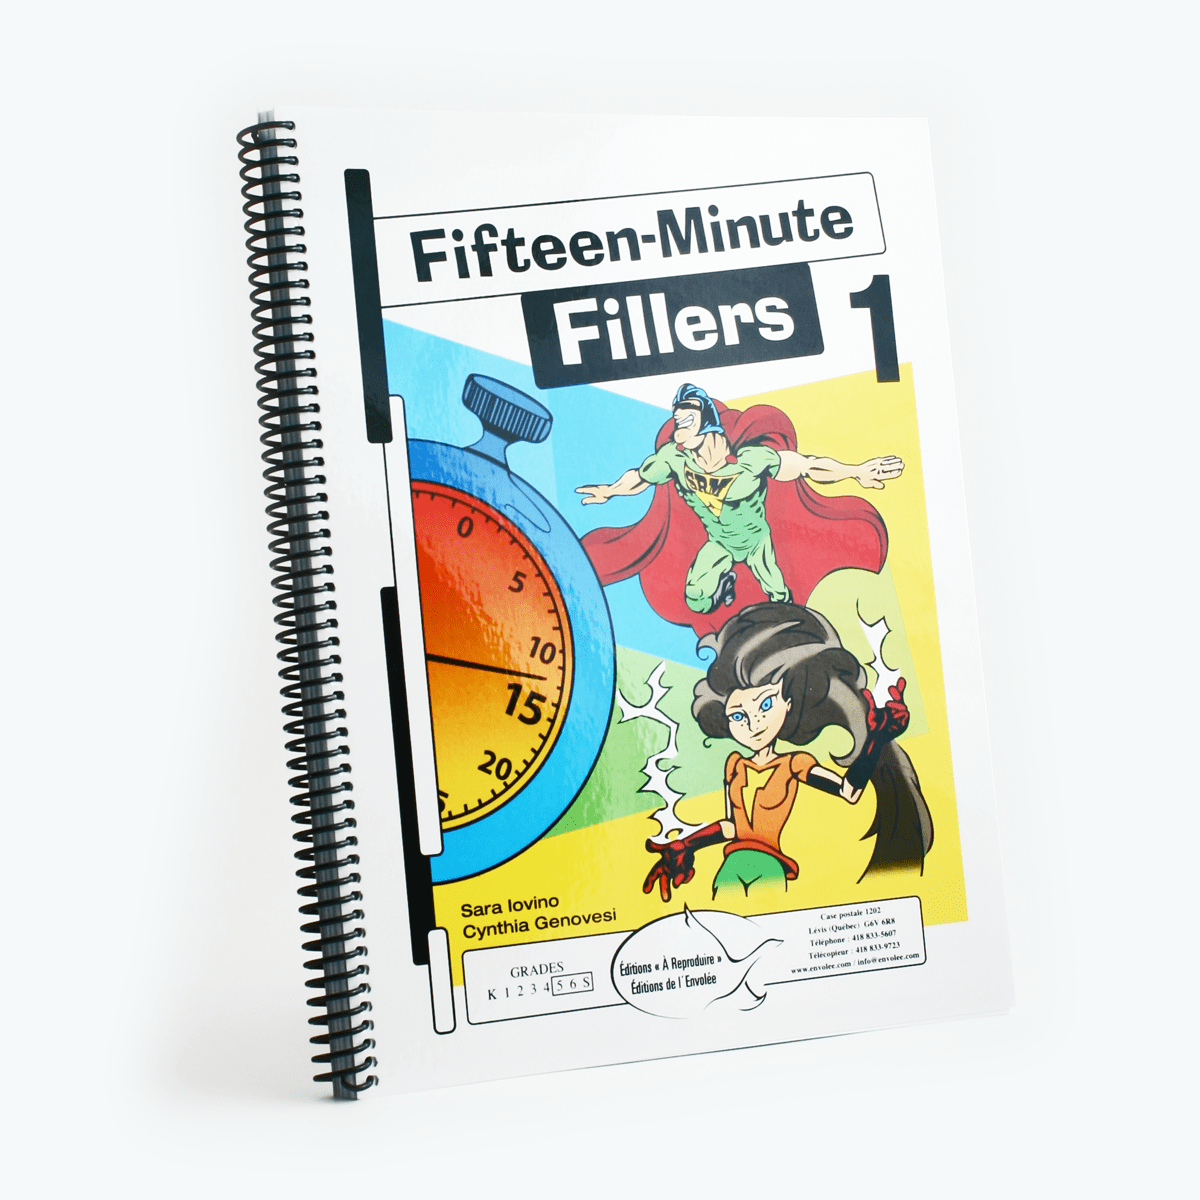 Fifteen-Minute Fillers 1